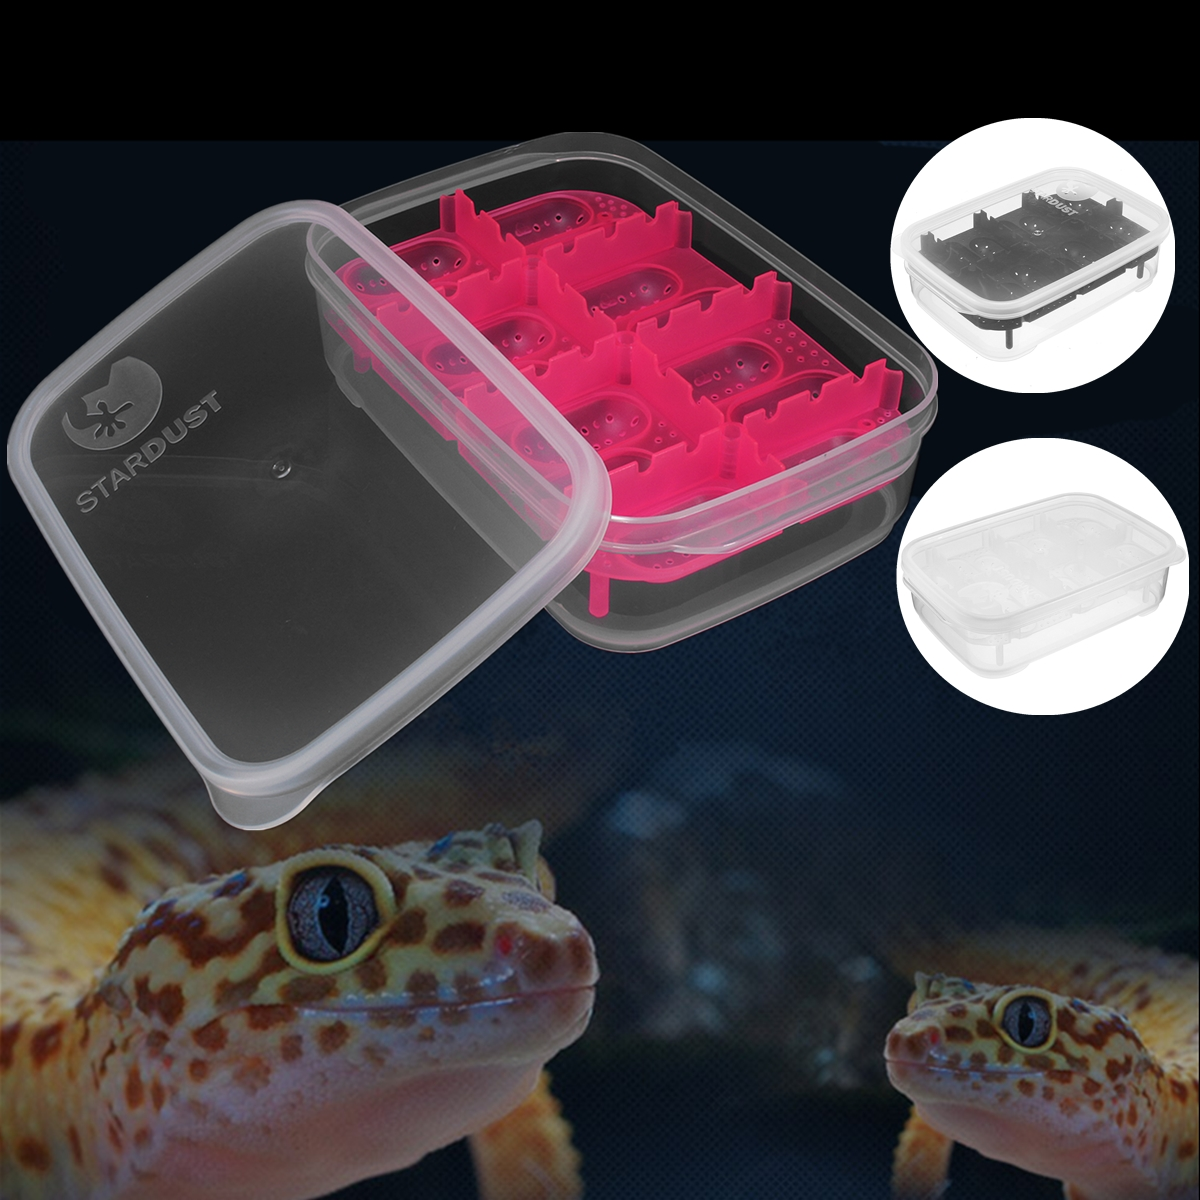 14 grid reptile eggs incubator tray lizard gecko snake bird hatcher box case uk ebay. Black Bedroom Furniture Sets. Home Design Ideas